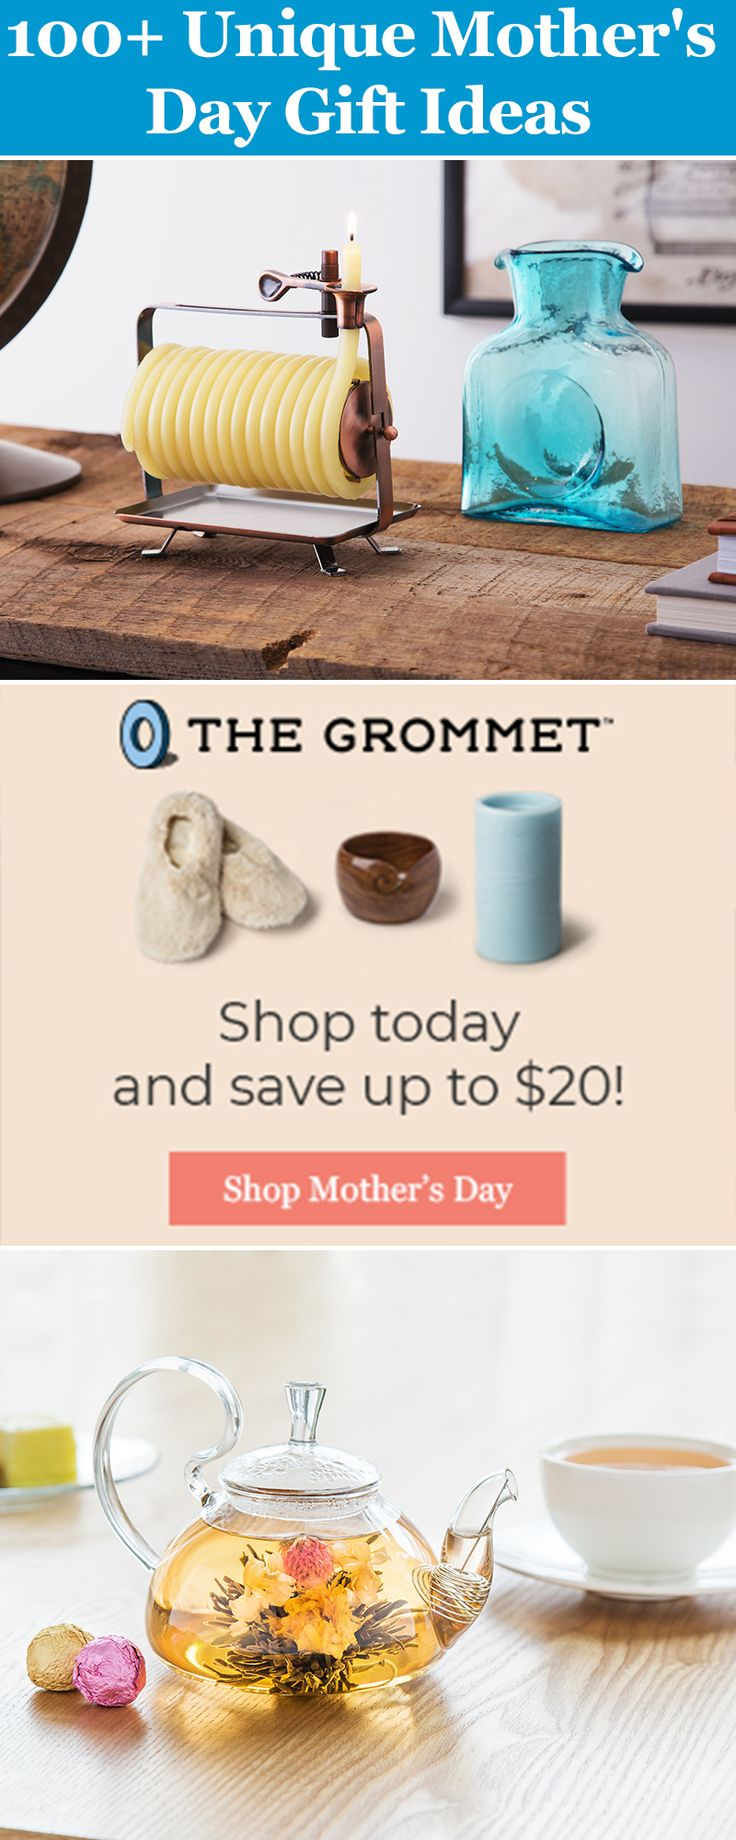 As a special mothers day gift for a limited time we are